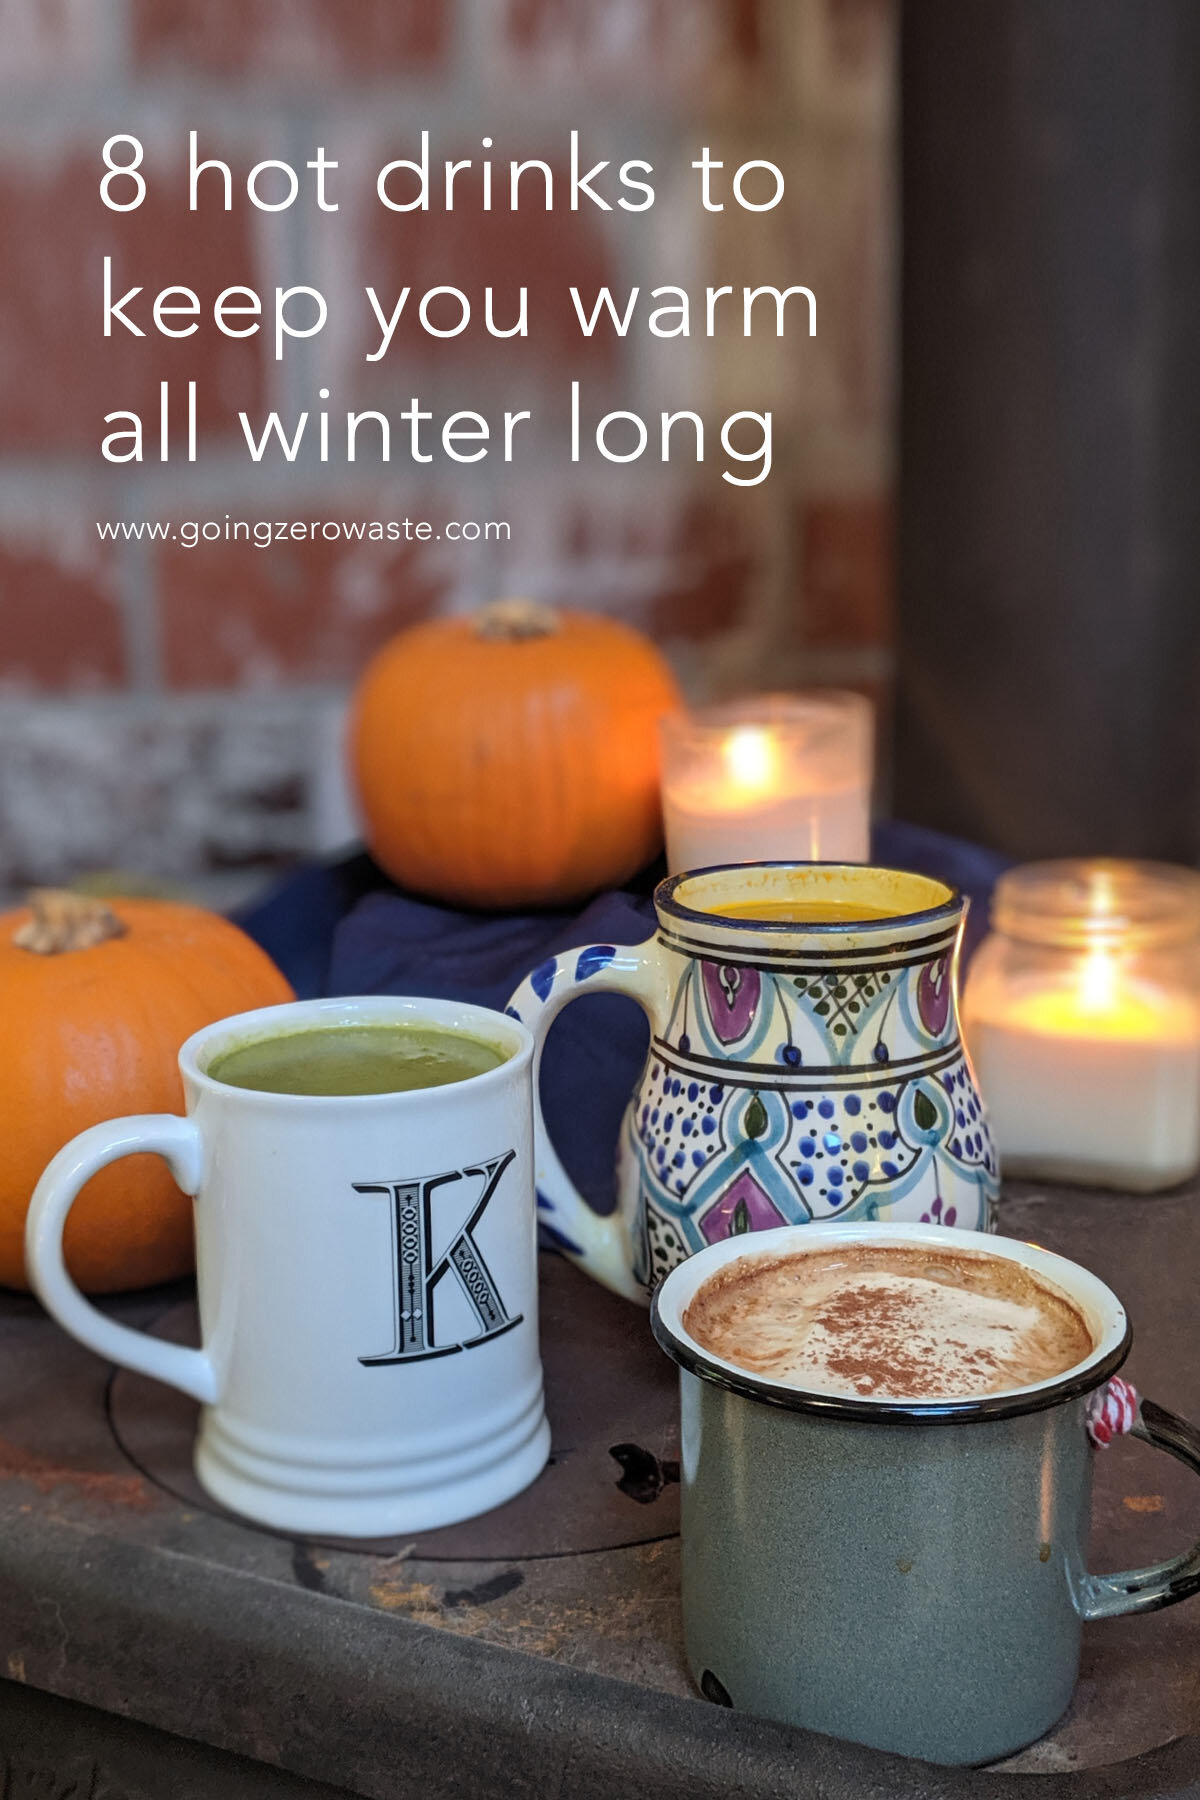 8 Hot drinks perfect for fall from www.goingzerowaste.com #ecofriendly #falldrinks #hotchocolate #pumpkinspice #goldenmilk #matcha #whitechocolatematcha #sustainable #eco #hotdrinks #falldrinks #winterdrinks #holidaydrinks #partydrinks